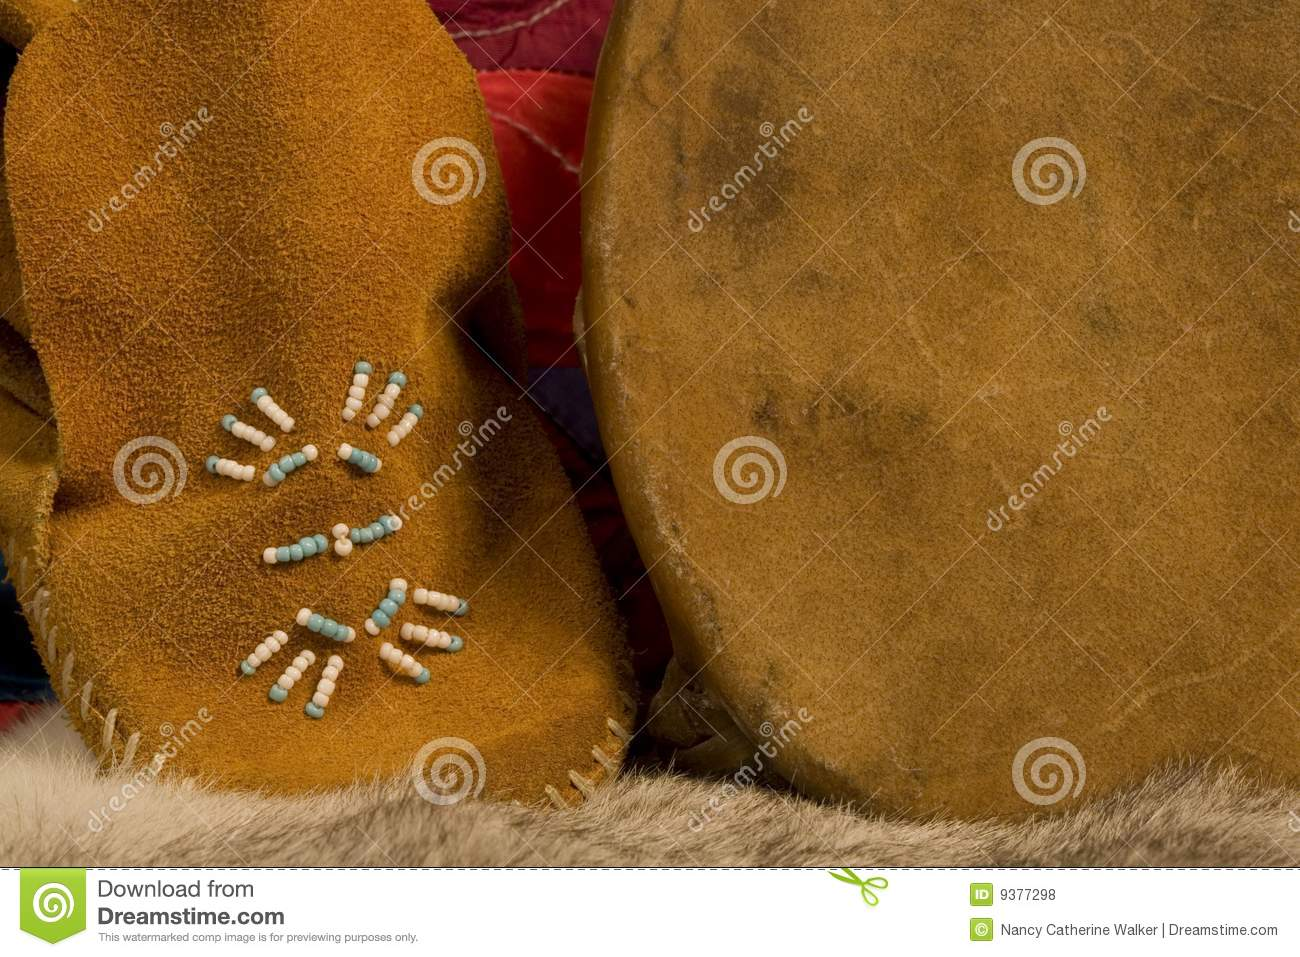 Details of a Childs Moccasin